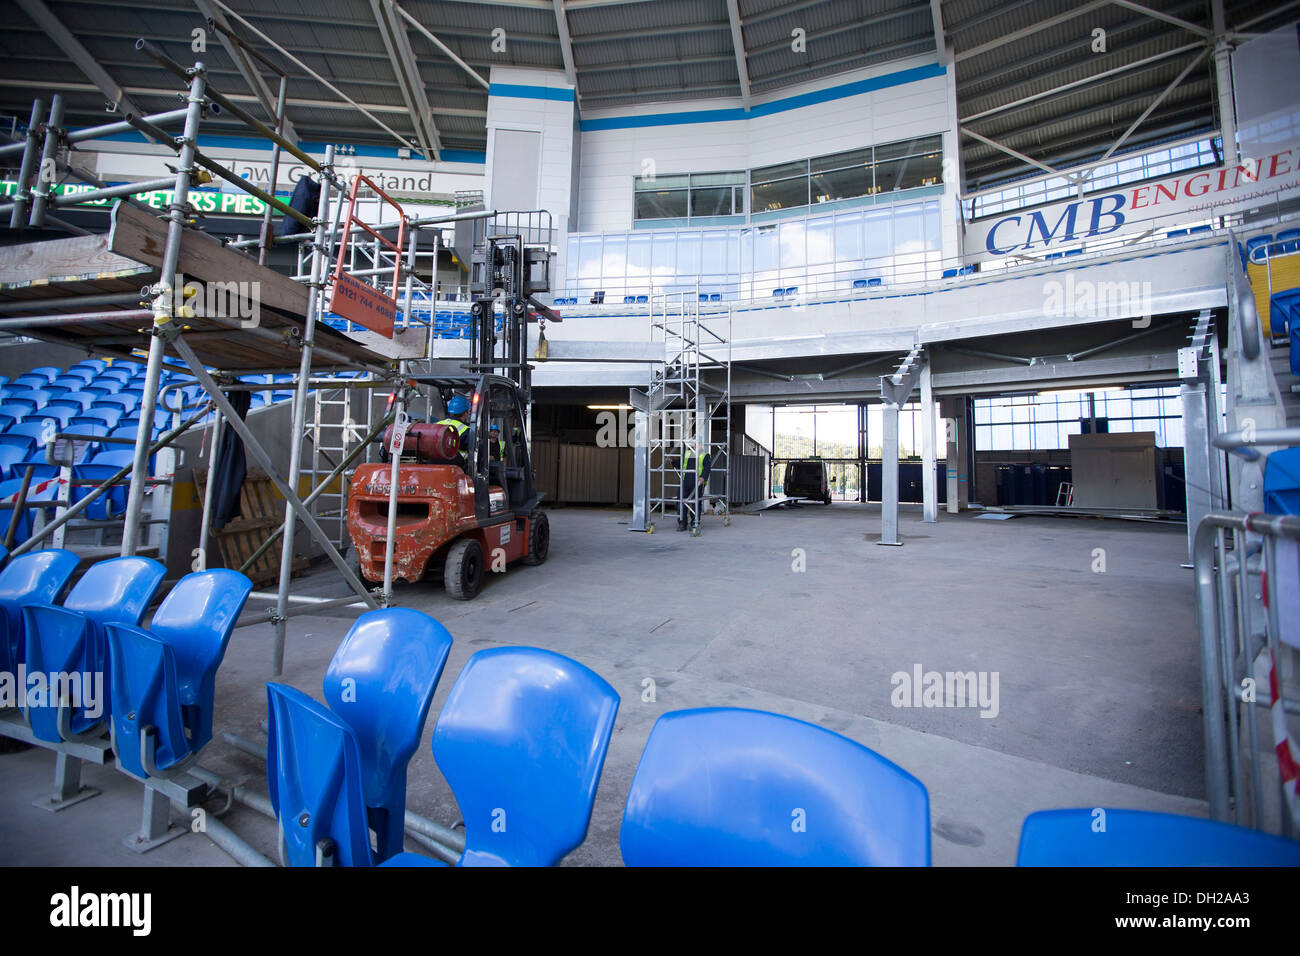 Cardiff City stadium increase their capacity by installing new seating at the home of Premiership football side Cardiff City. - Stock Image